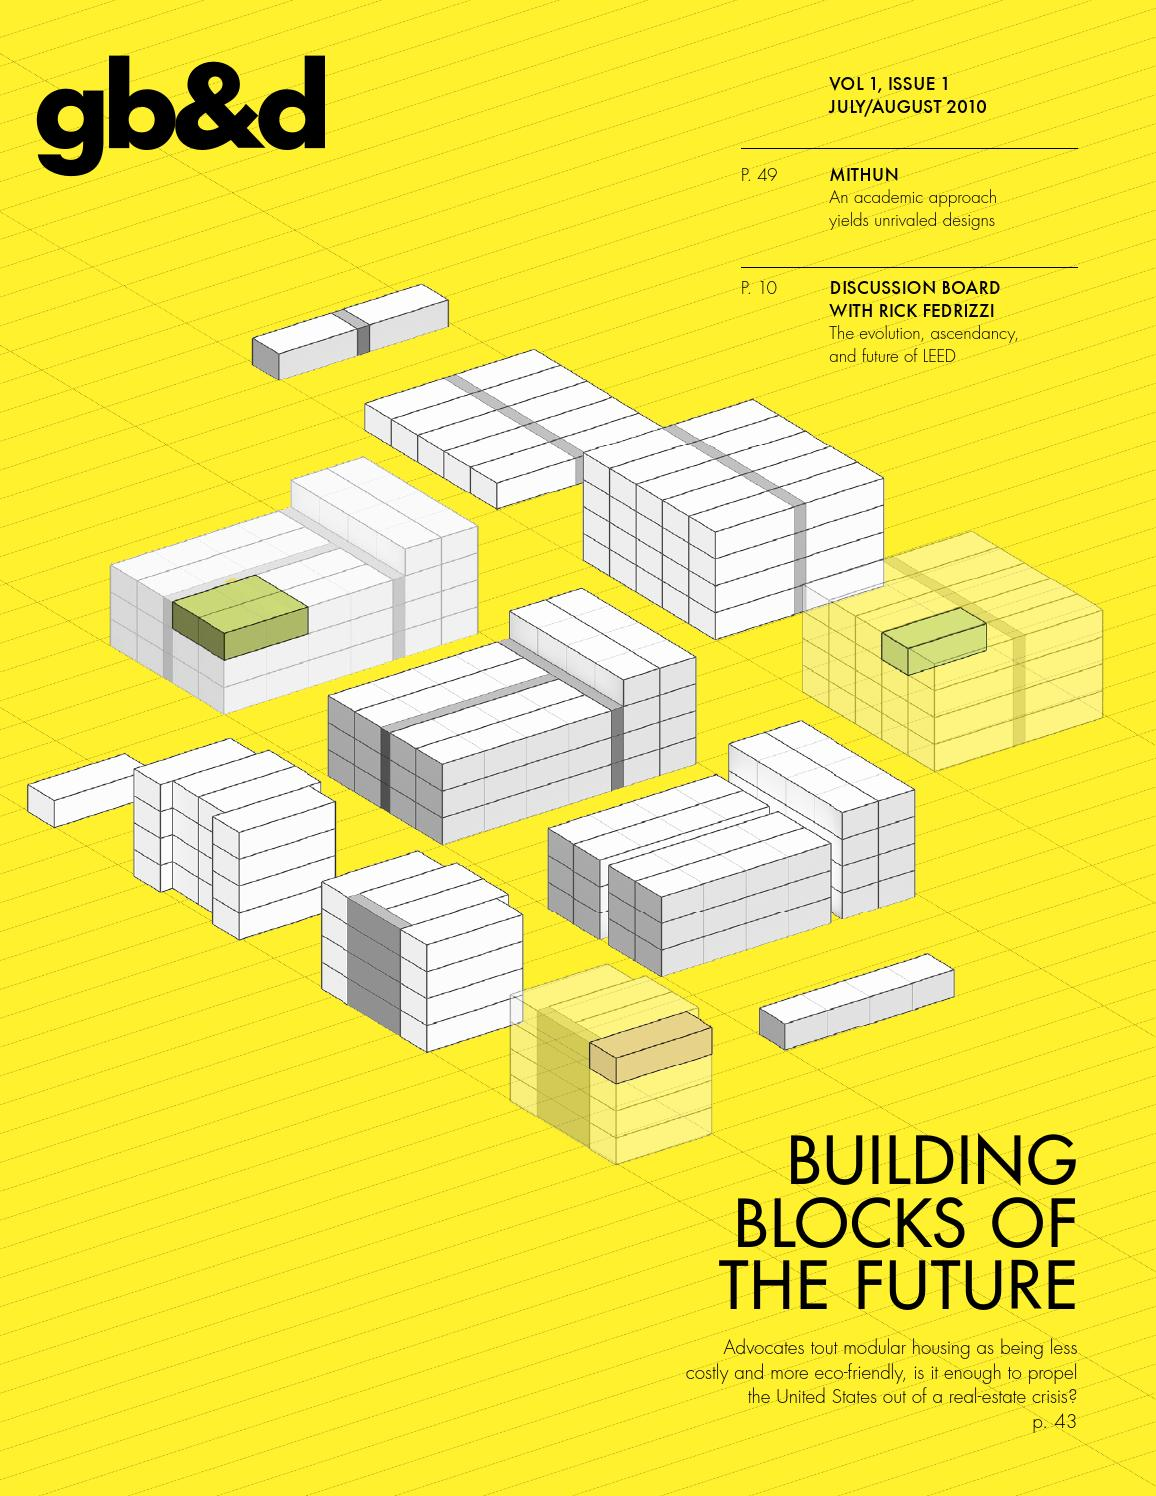 gb&d Issue 1: July/August 2010 by Green Building & Design - issuu